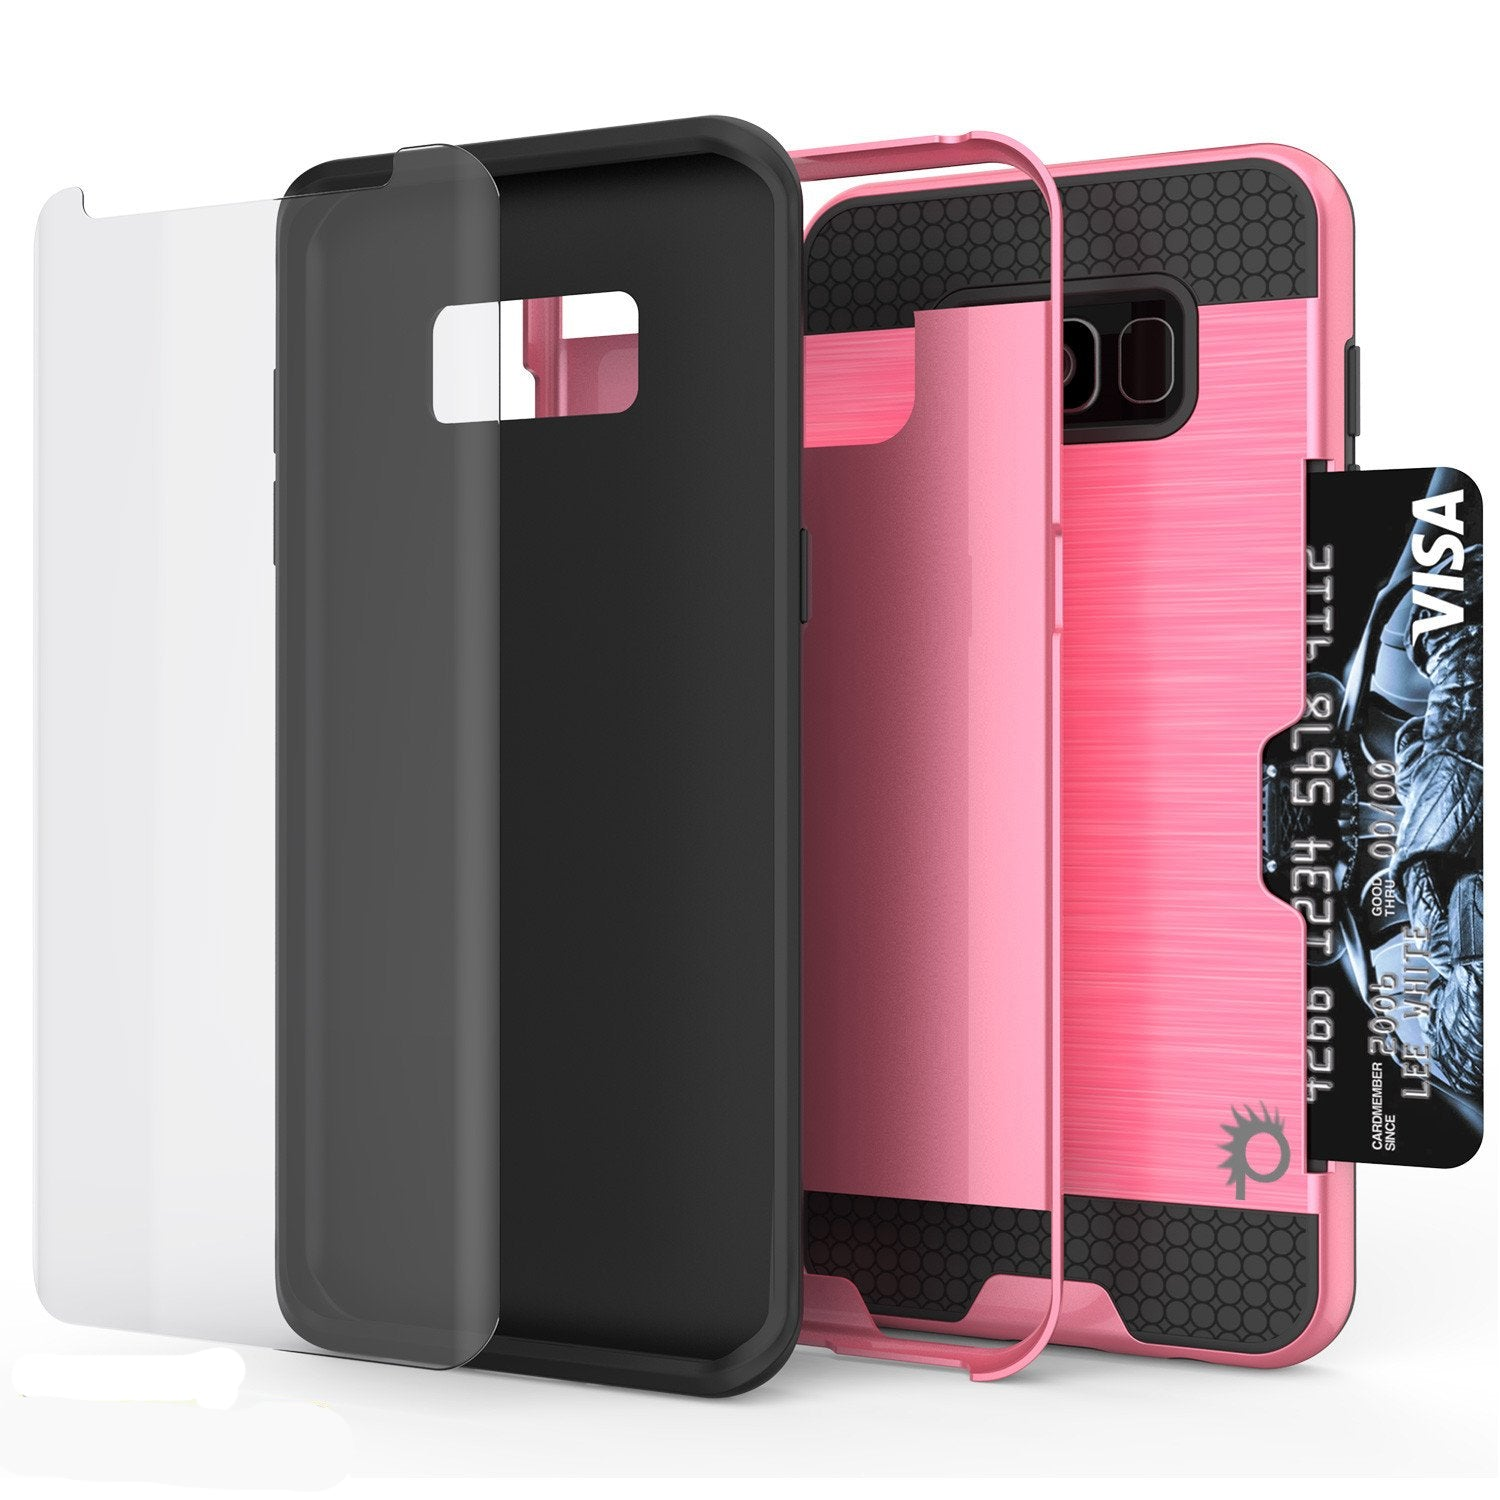 Galaxy S8 Plus Case, PUNKcase [SLOT Series] [Slim Fit] Dual-Layer Armor Cover w/Integrated Anti-Shock System [Pink]